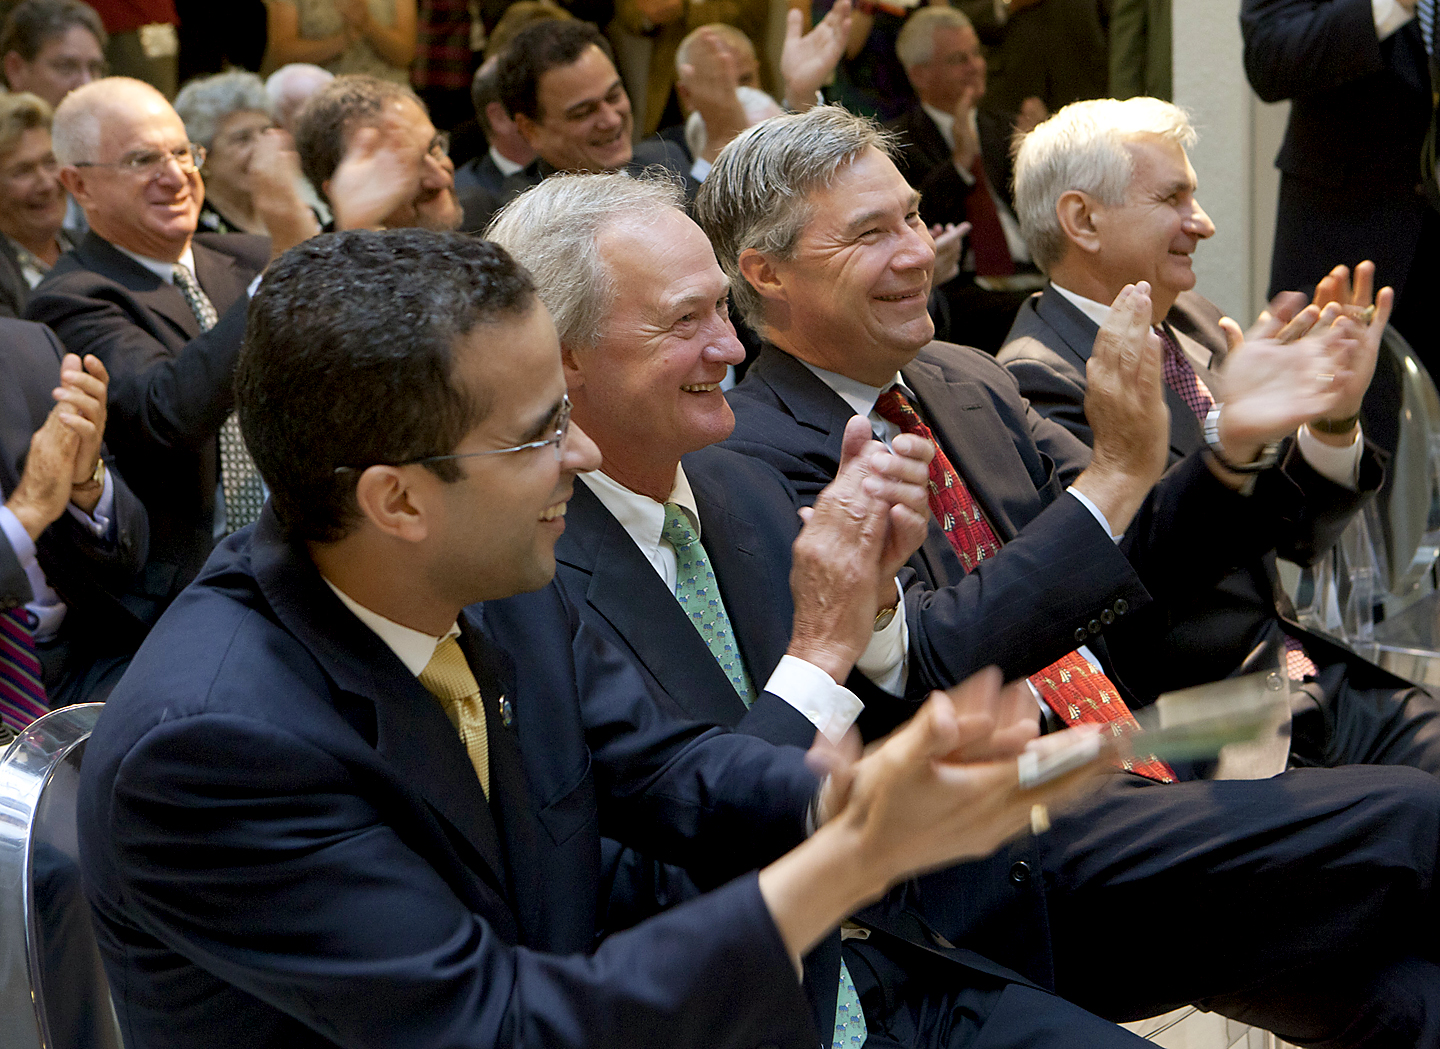 A big day for Brown, Providence, Rhode Island: Mayor Angel Taveras, Gov. Lincoln Chafee, and Sens. Sheldon Whitehouse and Jack Reed cheer President Ruth Simmons at the grand opening. Credit: Mike Cohea/Brown University